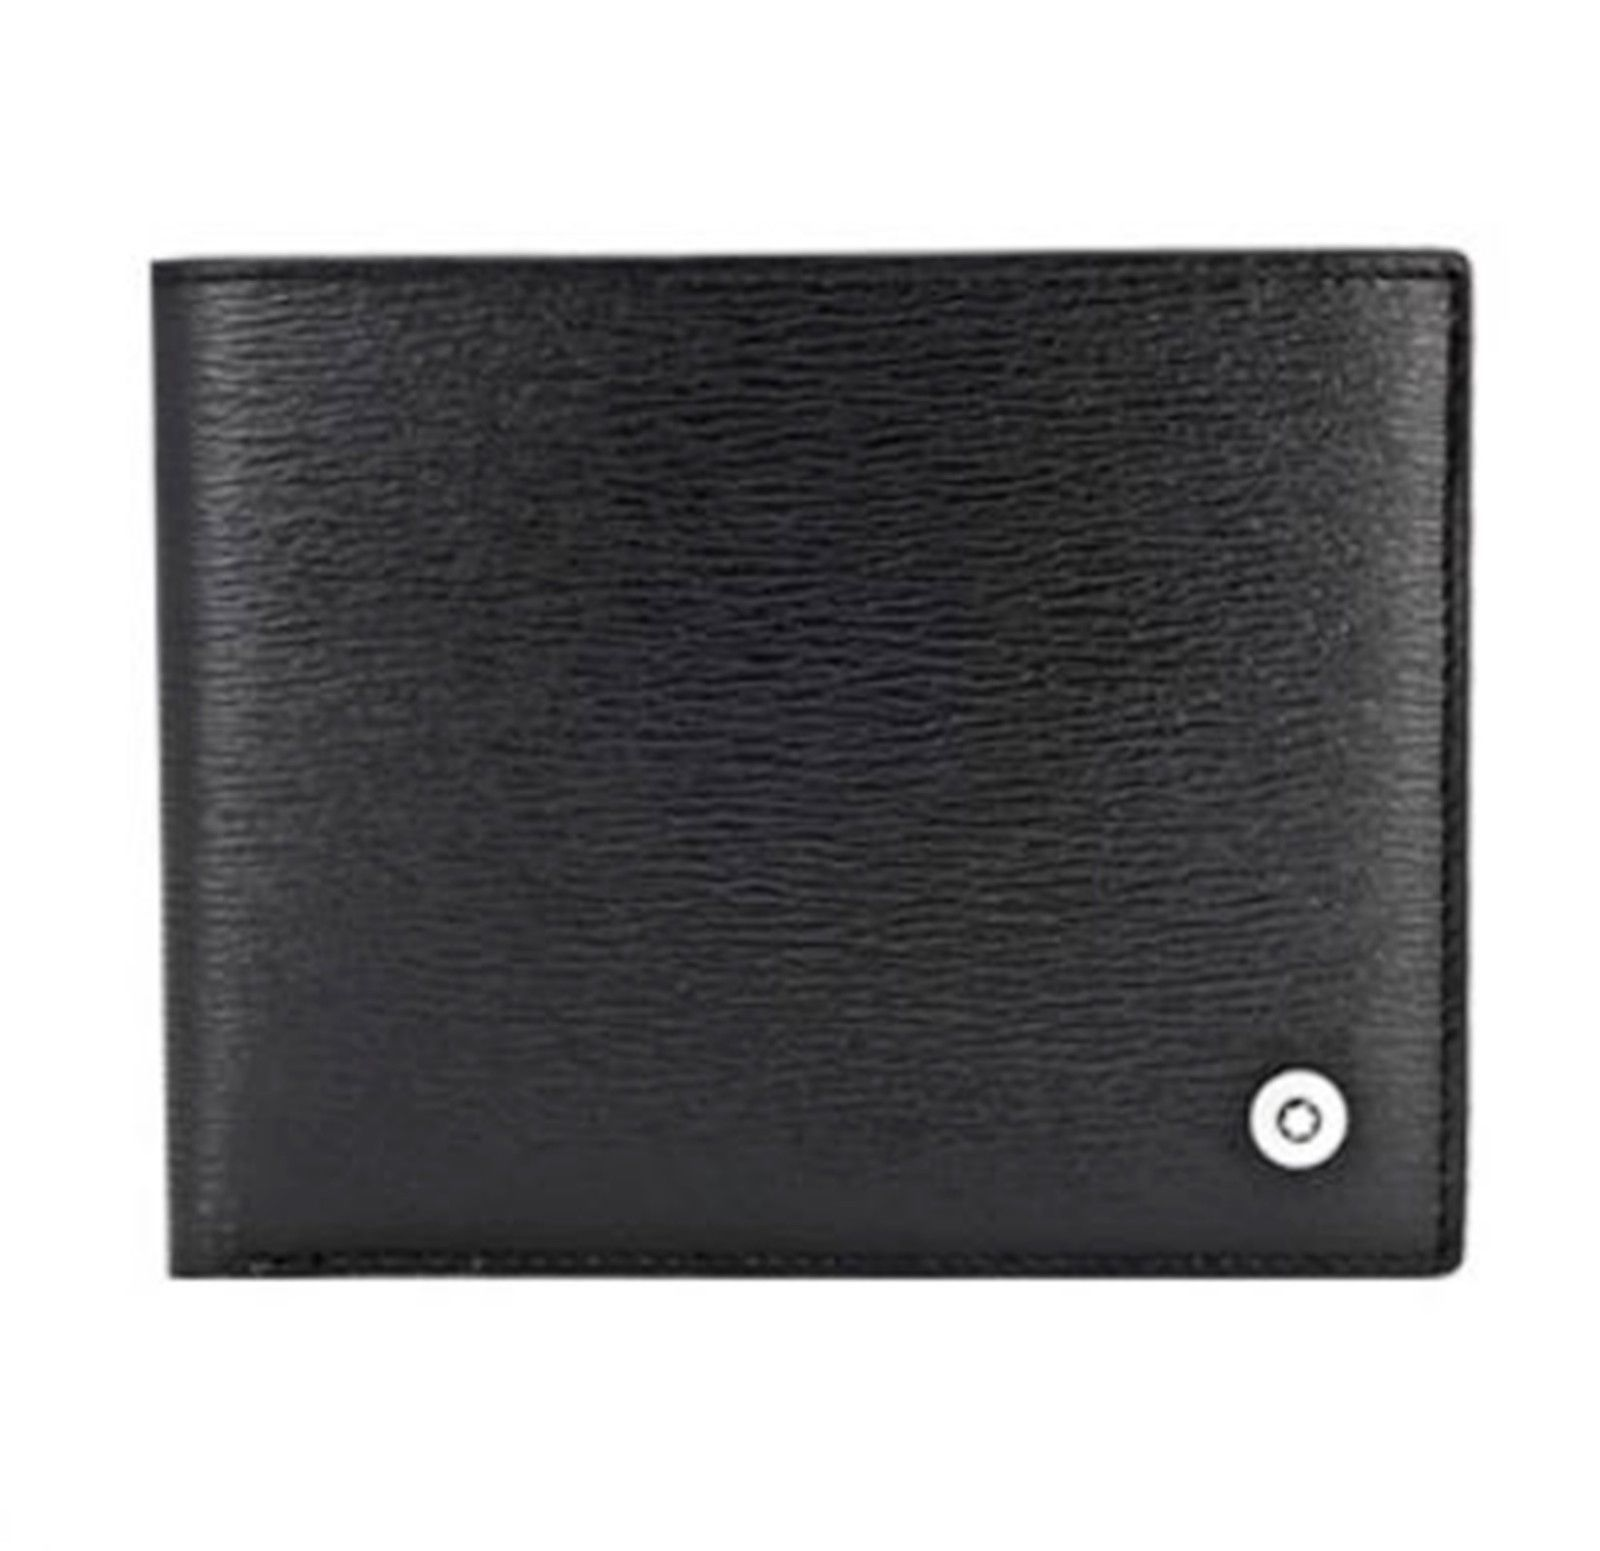 [MONT BLANC] Men's Leather Half Wallet 6cc 38036